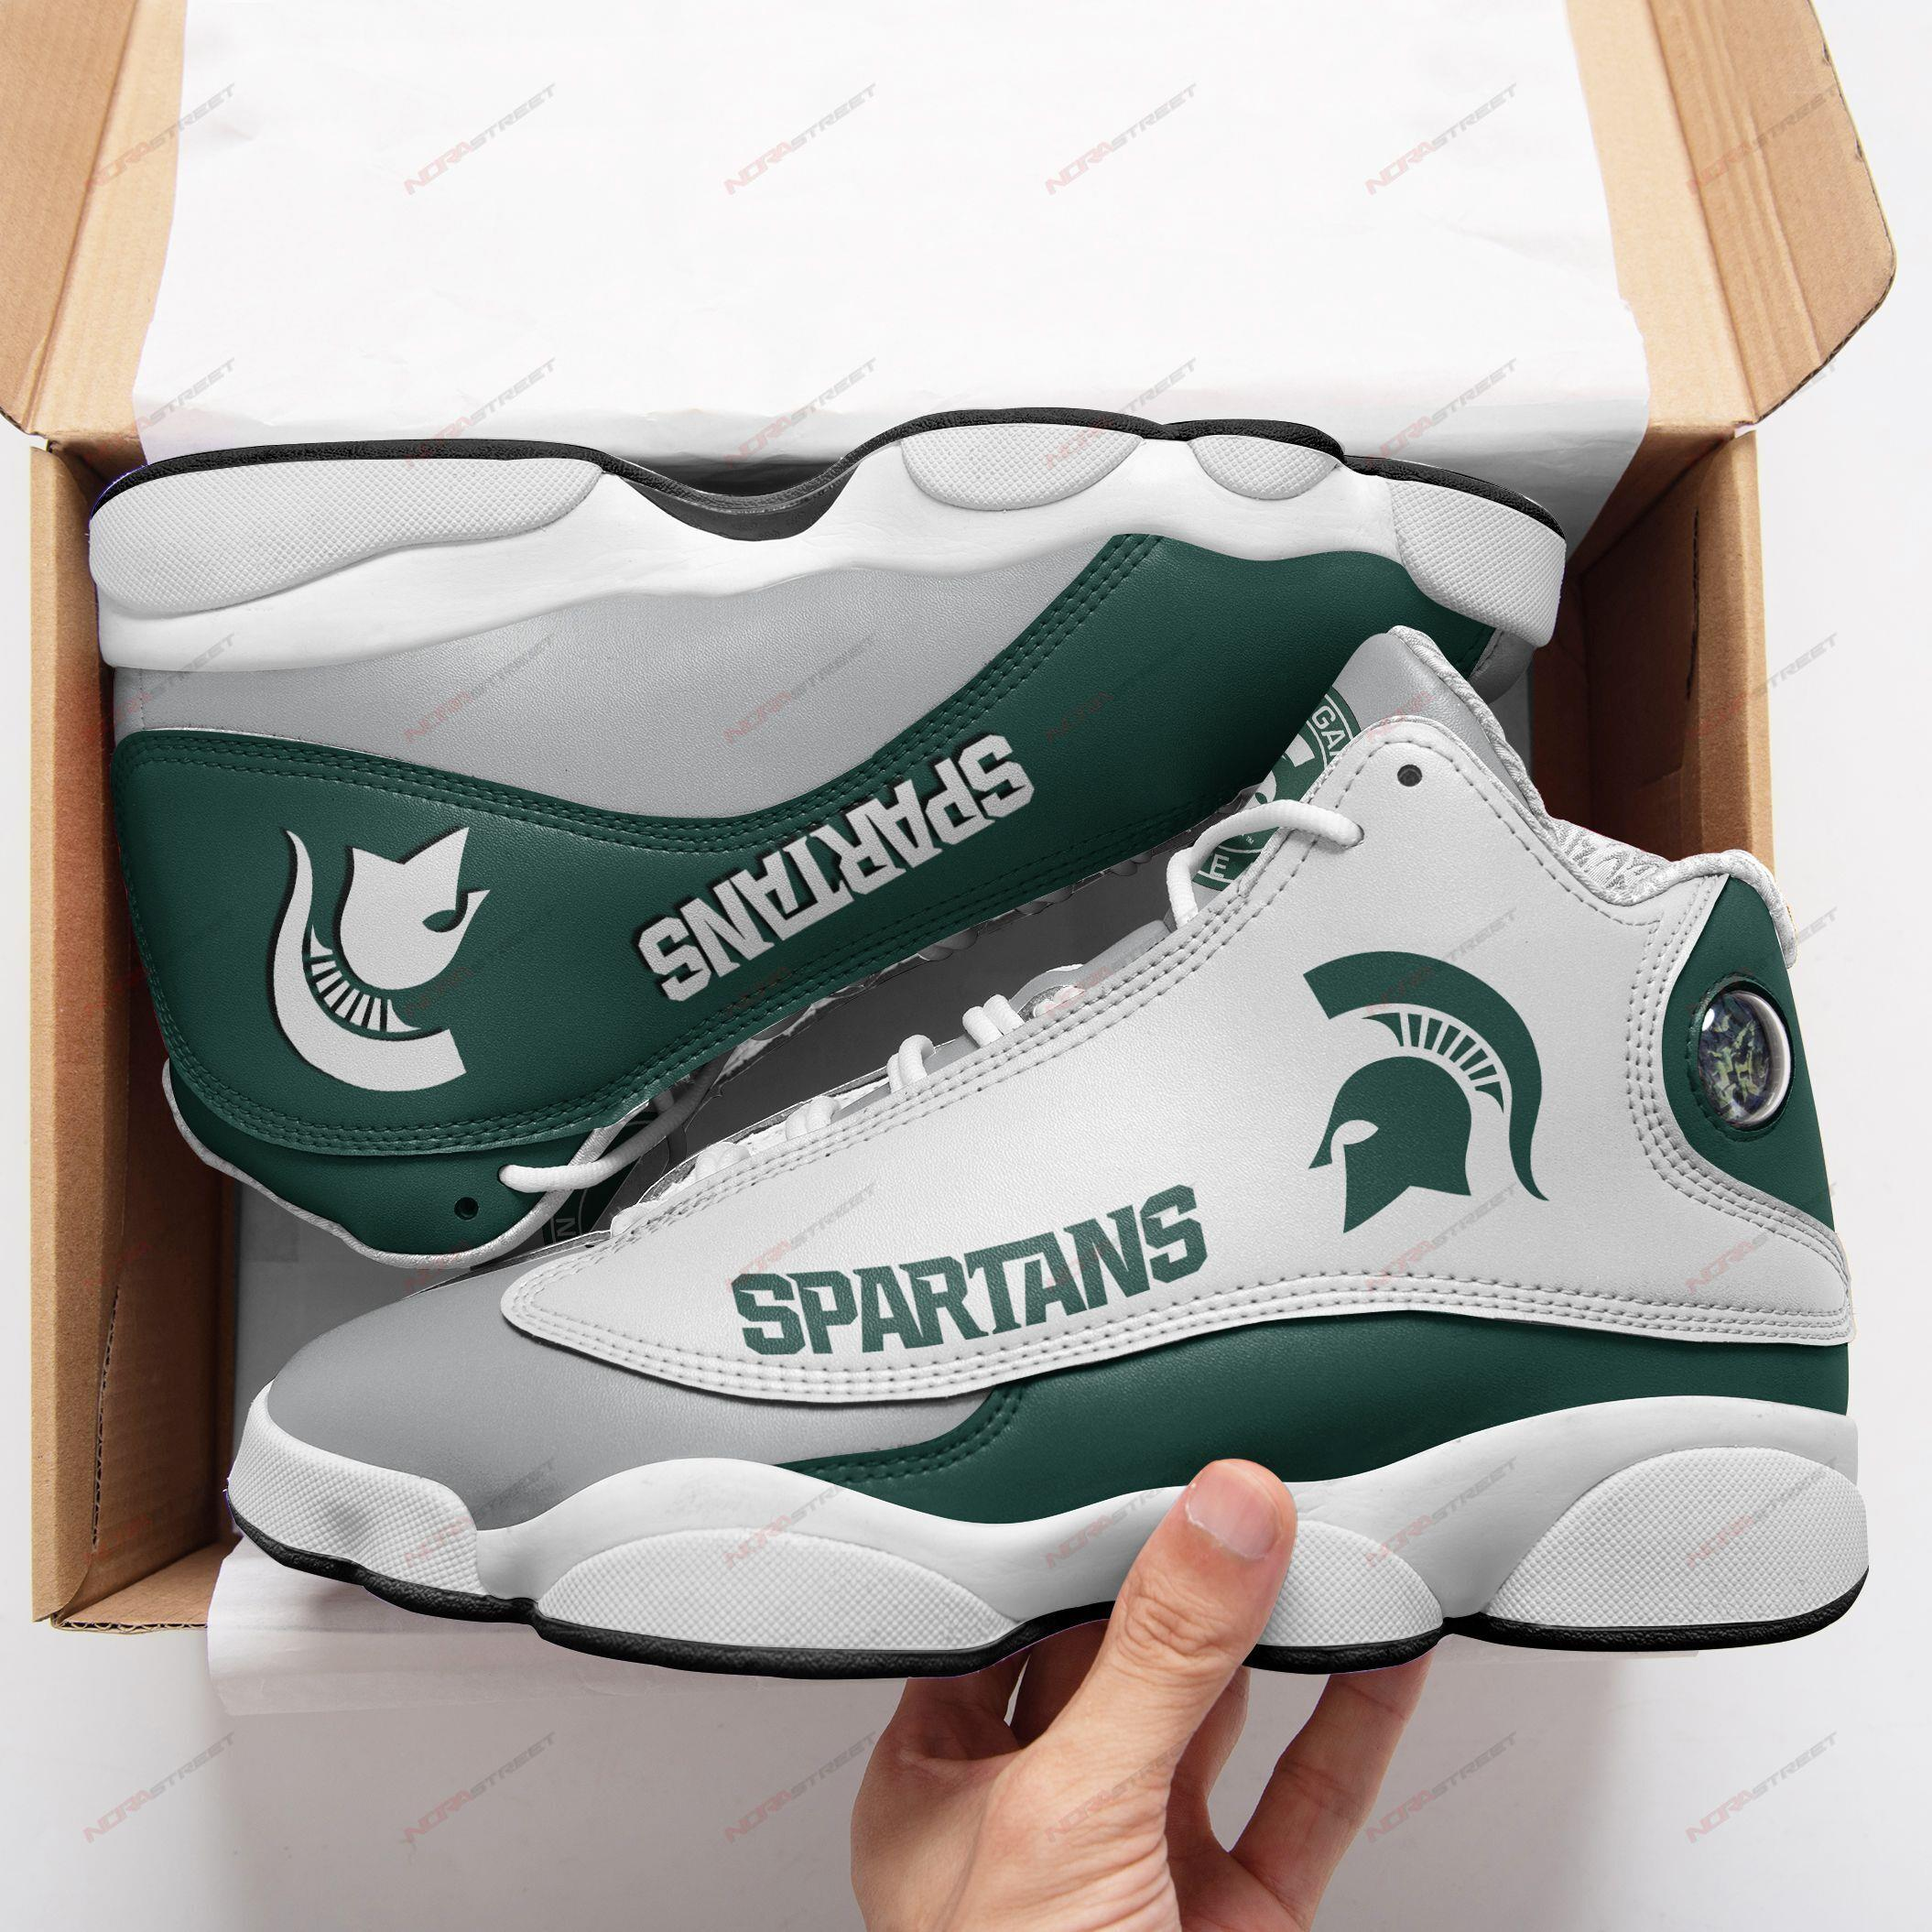 Michigan State Air Jordan 13 Sneakers Sport Shoes